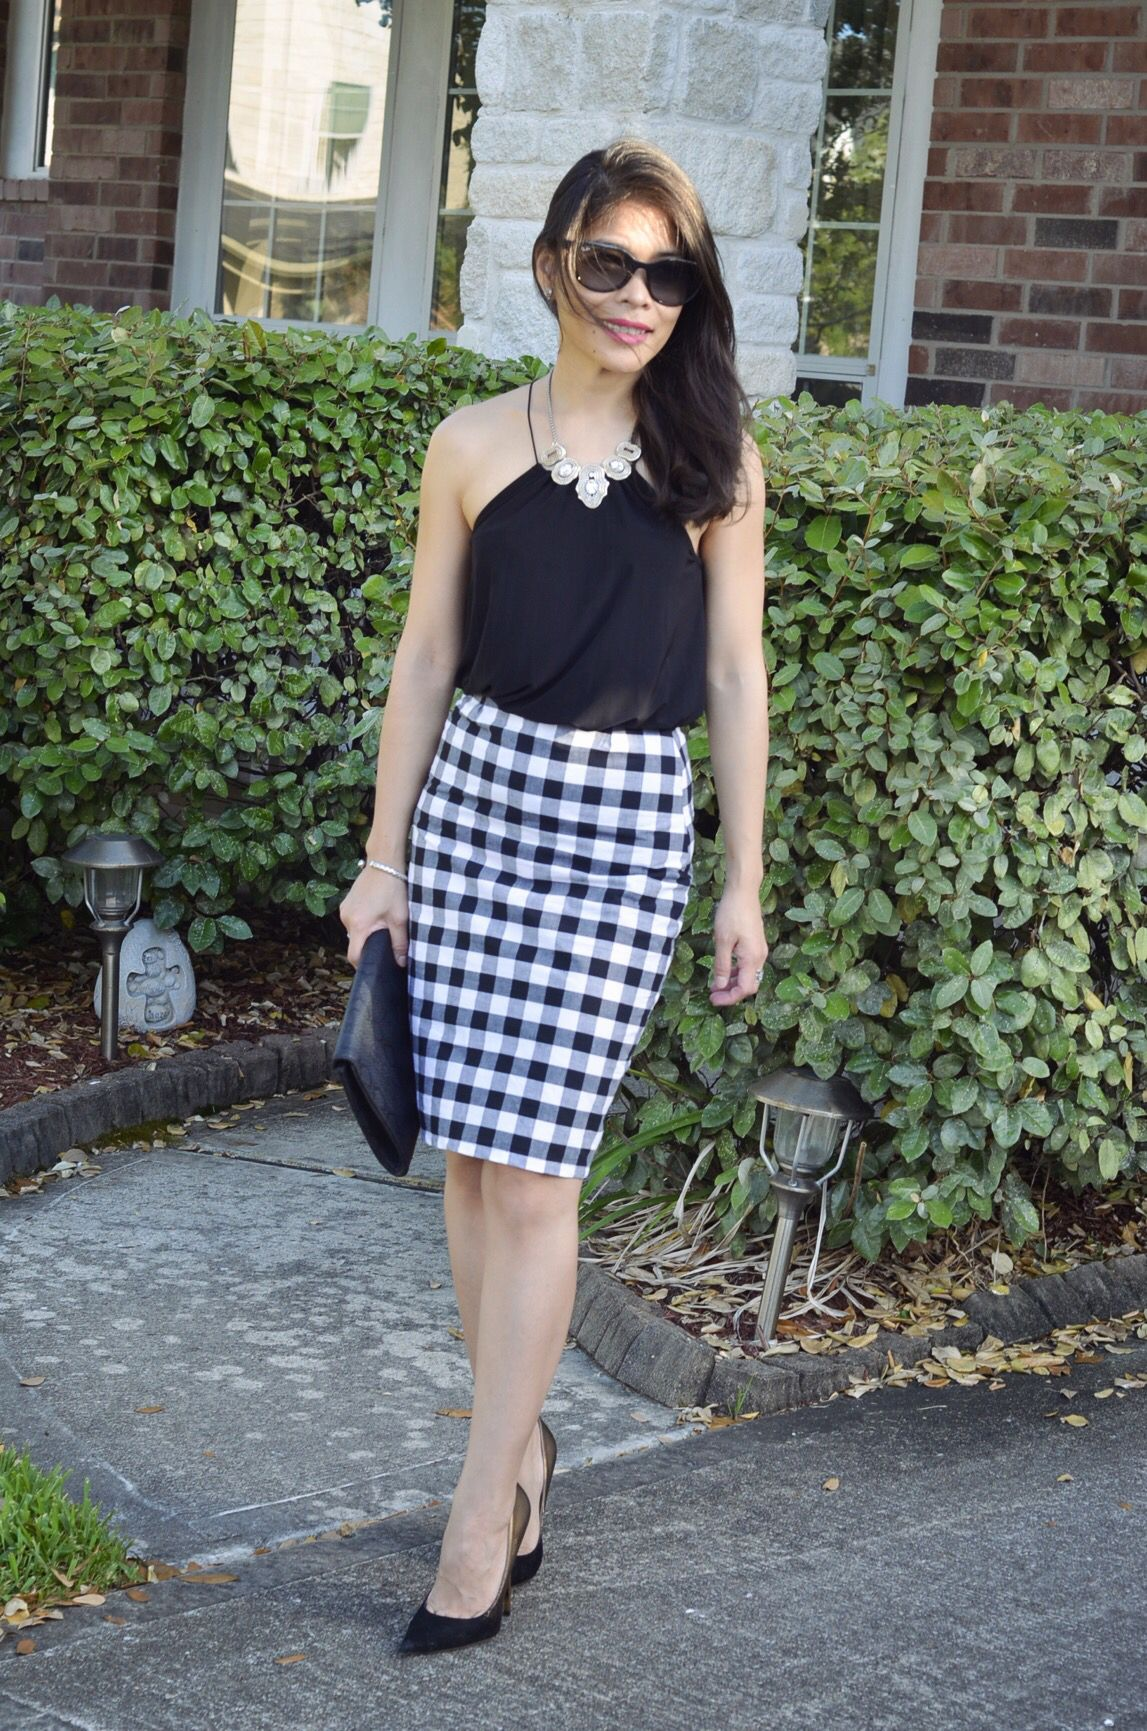 bca1c455c6 Pin by Jingle Alcazaren on Ynsemble | Gingham skirt, How to wear, Skirts